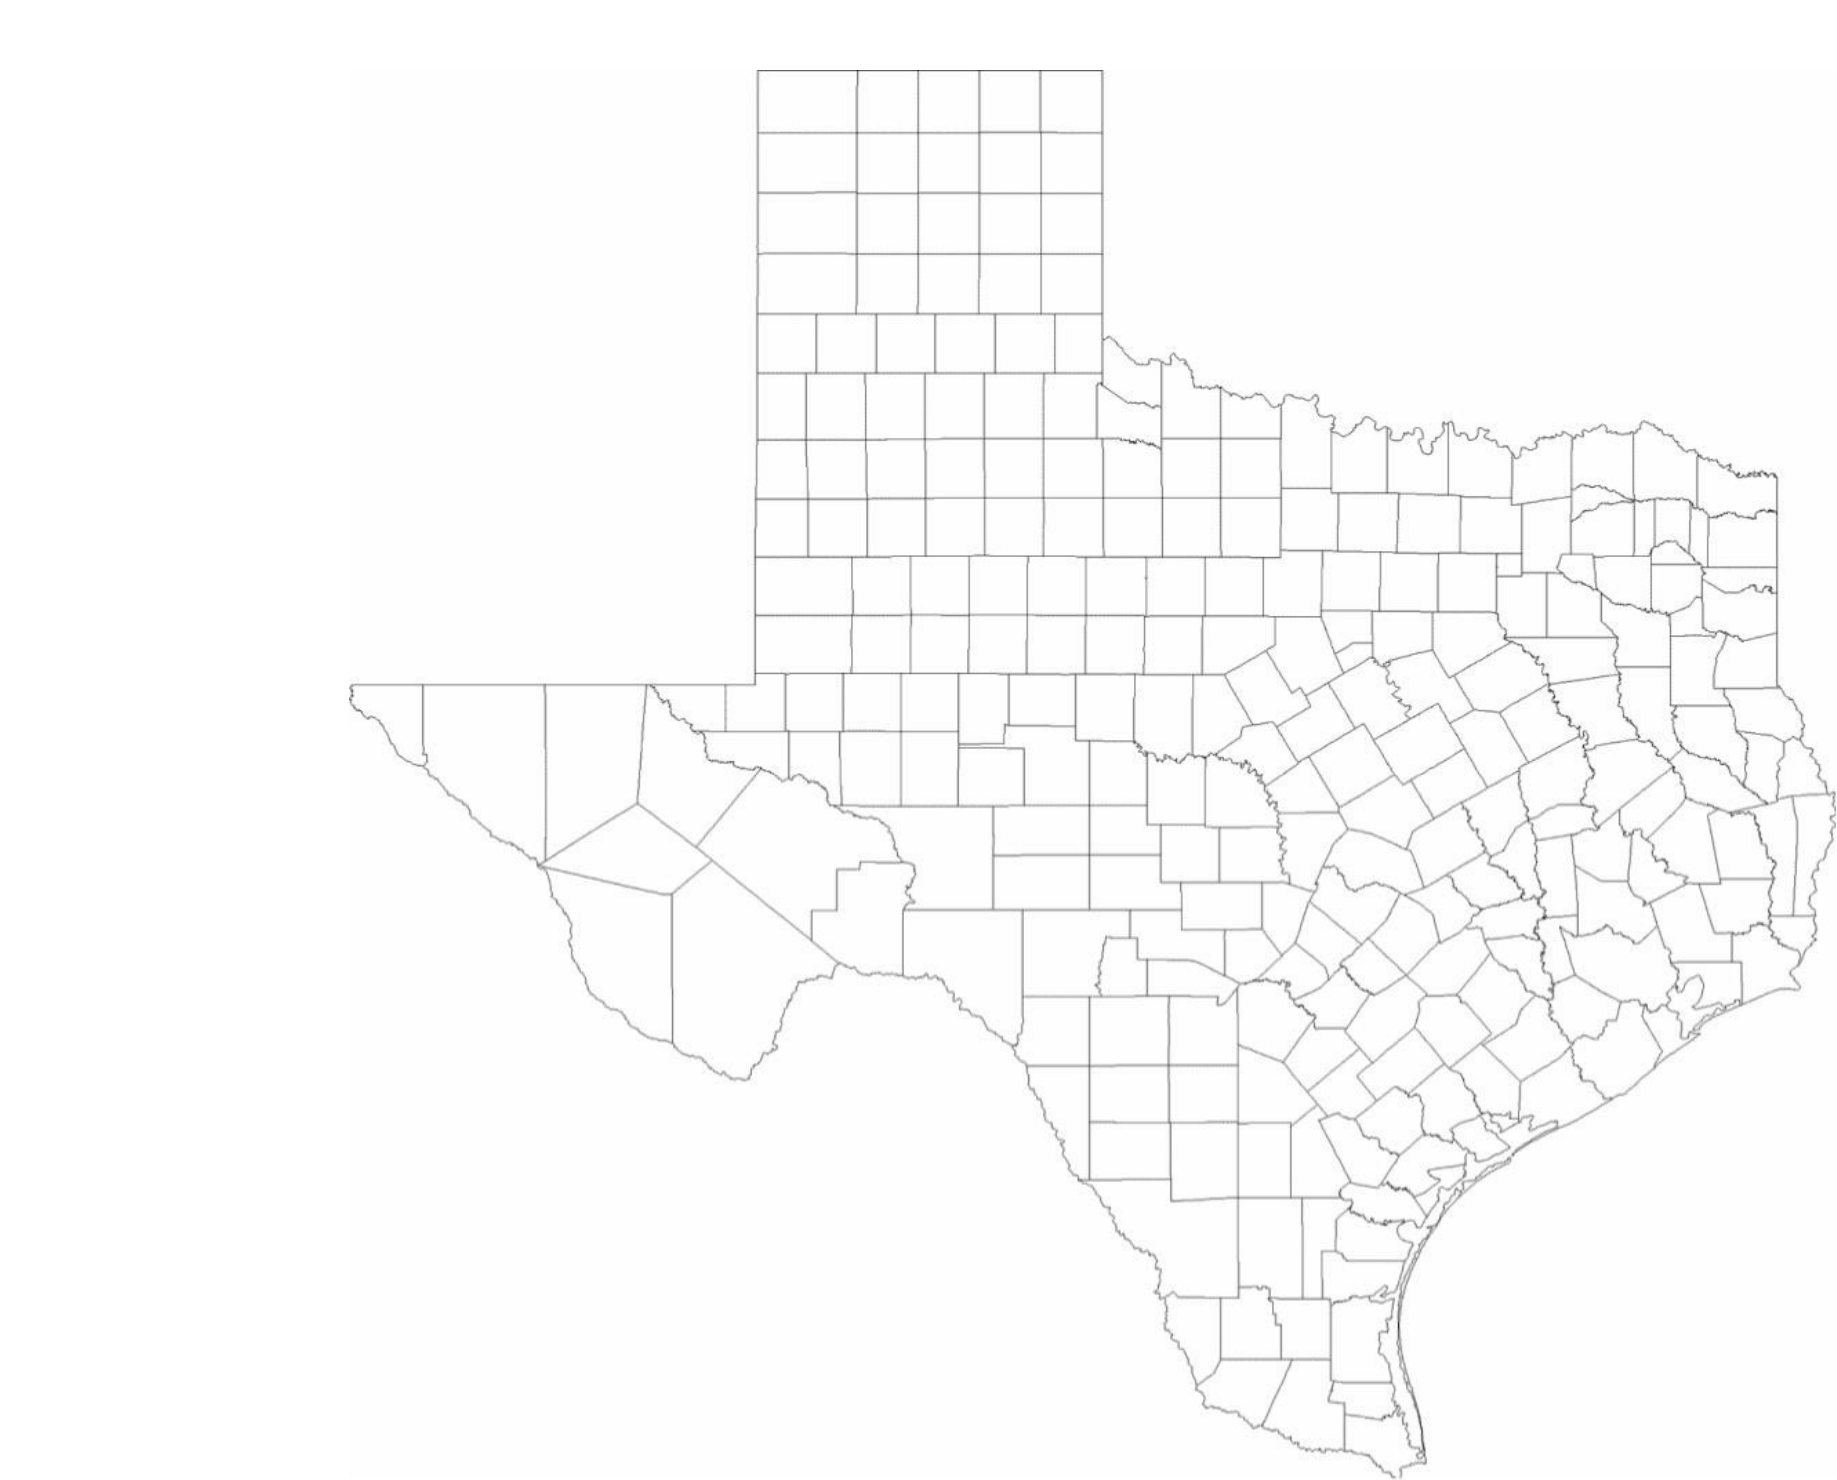 Blank Texas County Map Free Download